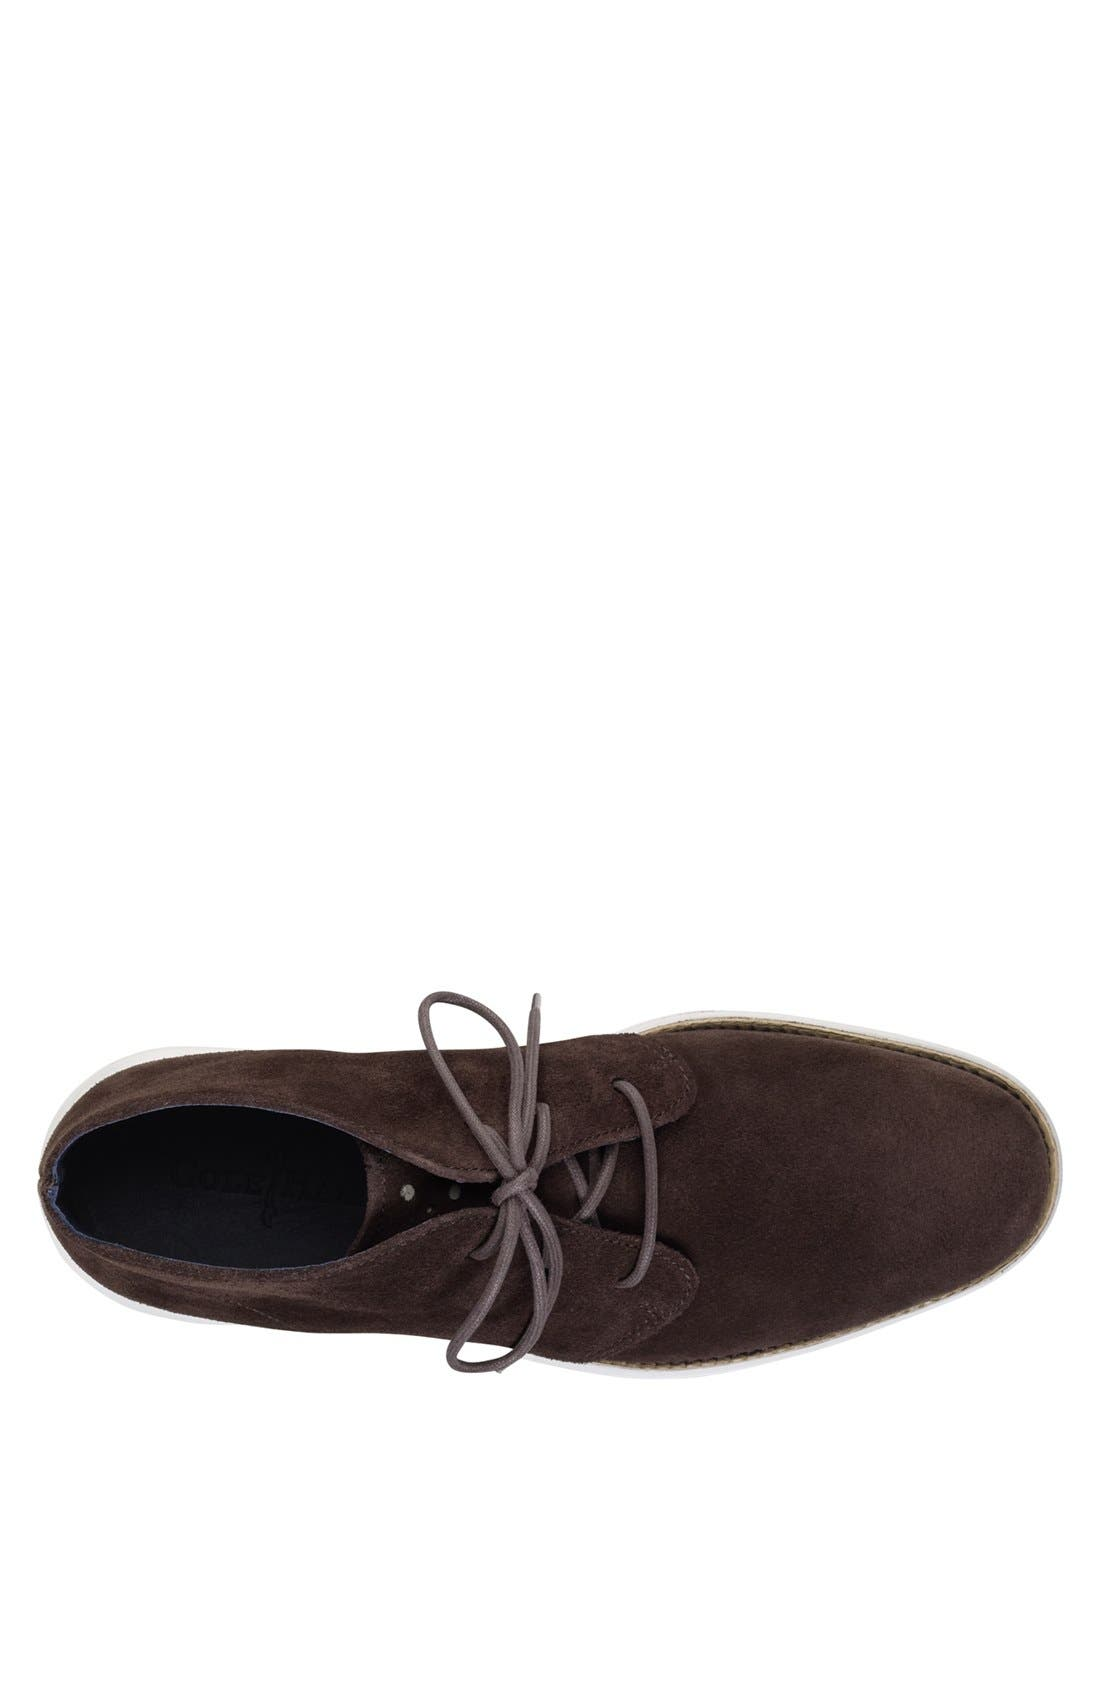 Alternate Image 3  - Cole Haan 'LunarGrand' Chukka Boot   (Men)